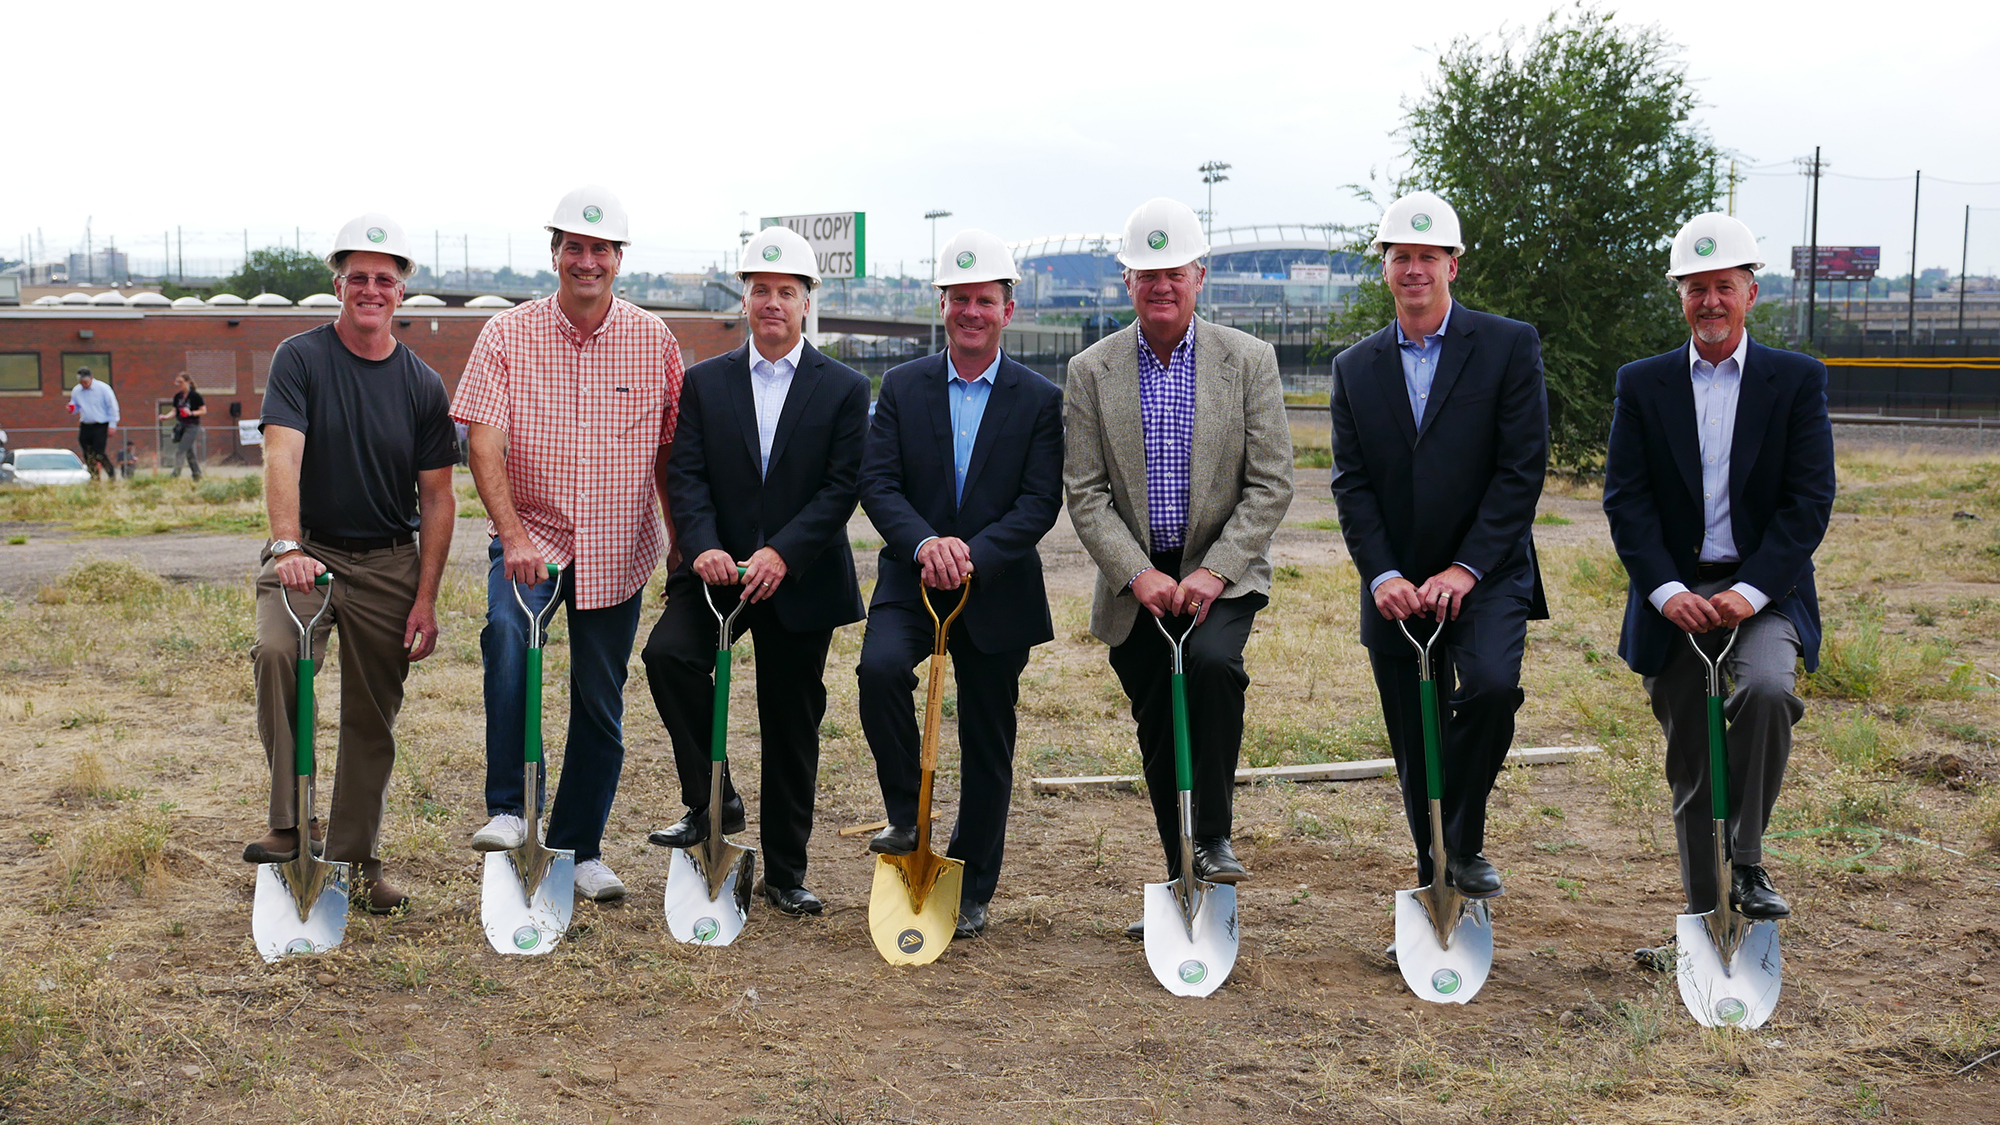 All Copy Products Breaks Ground on New Corporate Headquarters